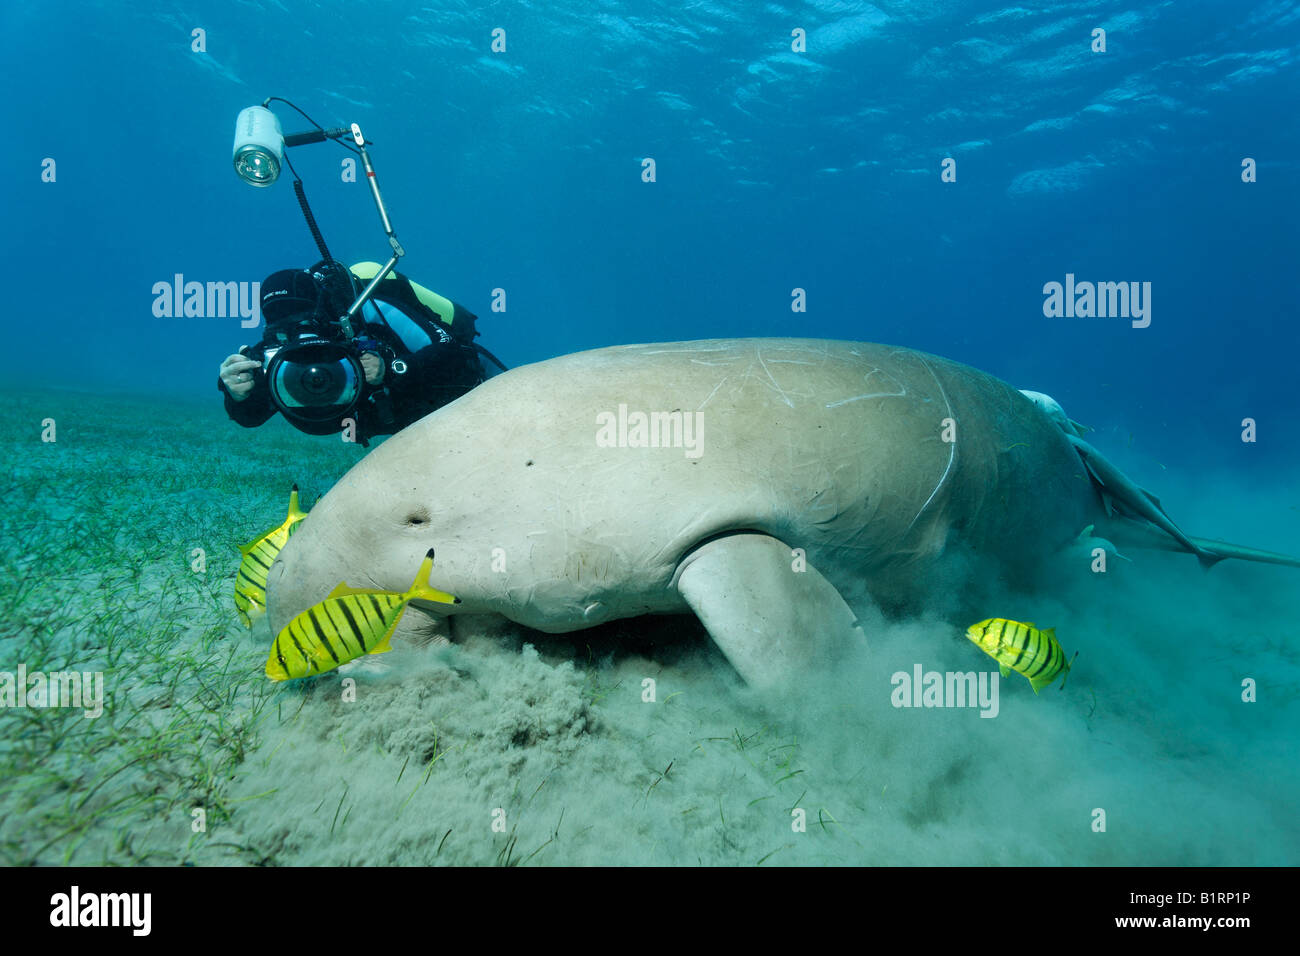 Dugong (Dugong dugon) and three Golden Trevally fish (Gnathanodon speciosus), Shaab Marsa Alam, Red Sea, Egypt, - Stock Image